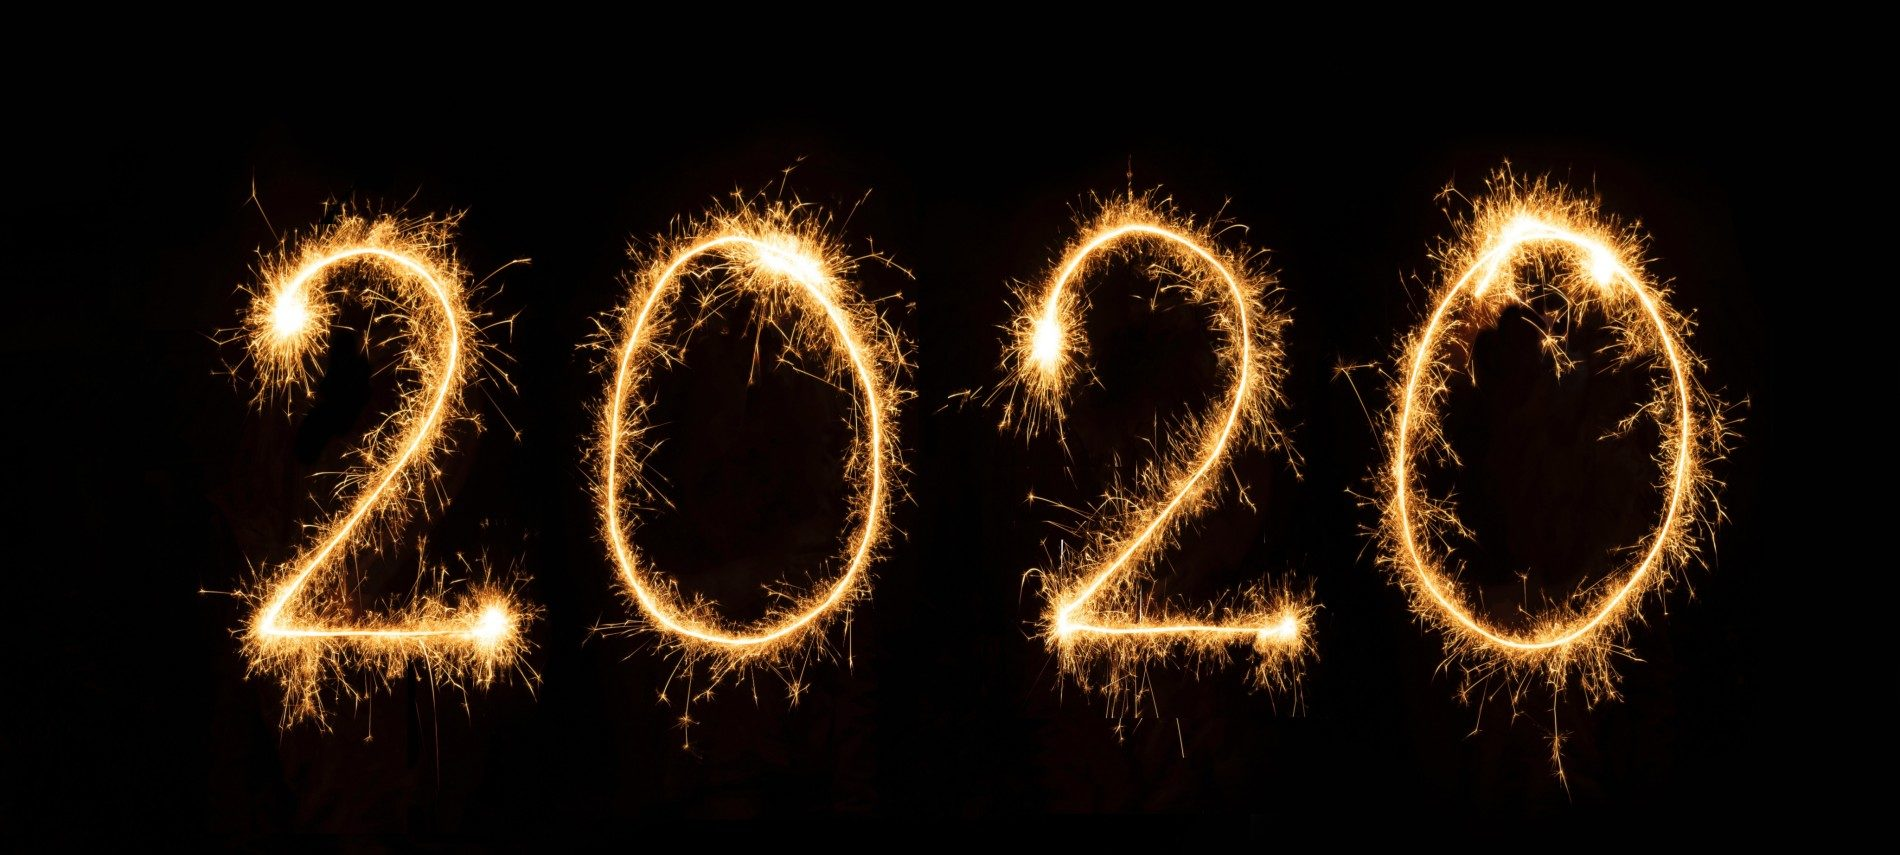 Dark black background featuring the numbers 2020 in gold sparklers